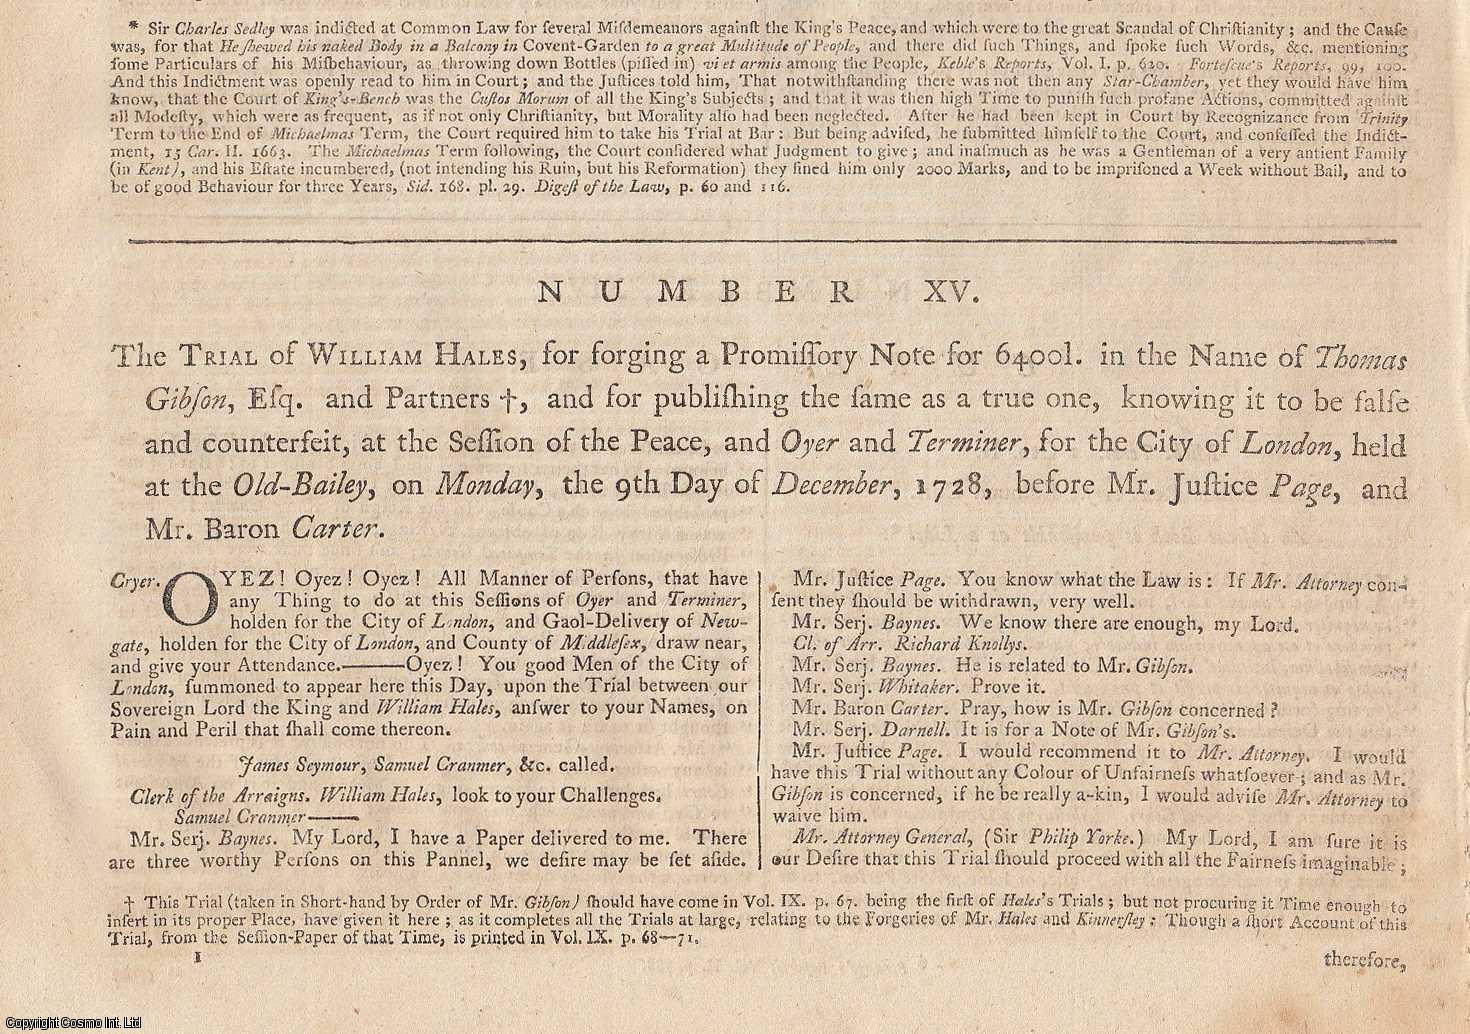 FORGERY.  The Trial of William Hales, for forging a Promissory Note for 6400 l. in the Name of Thomas Gibson, Esq. and Partners, and for publishing the same as a true one, knowing it to be false and counterfeit, at the Session of the Peace, and Oyer and Terminer, for the City of London, held at the Old Bailey, on Monday, the 9th Day of December, 1728, before Mr Justice Page, and Mr Baron Carter., [Trial].